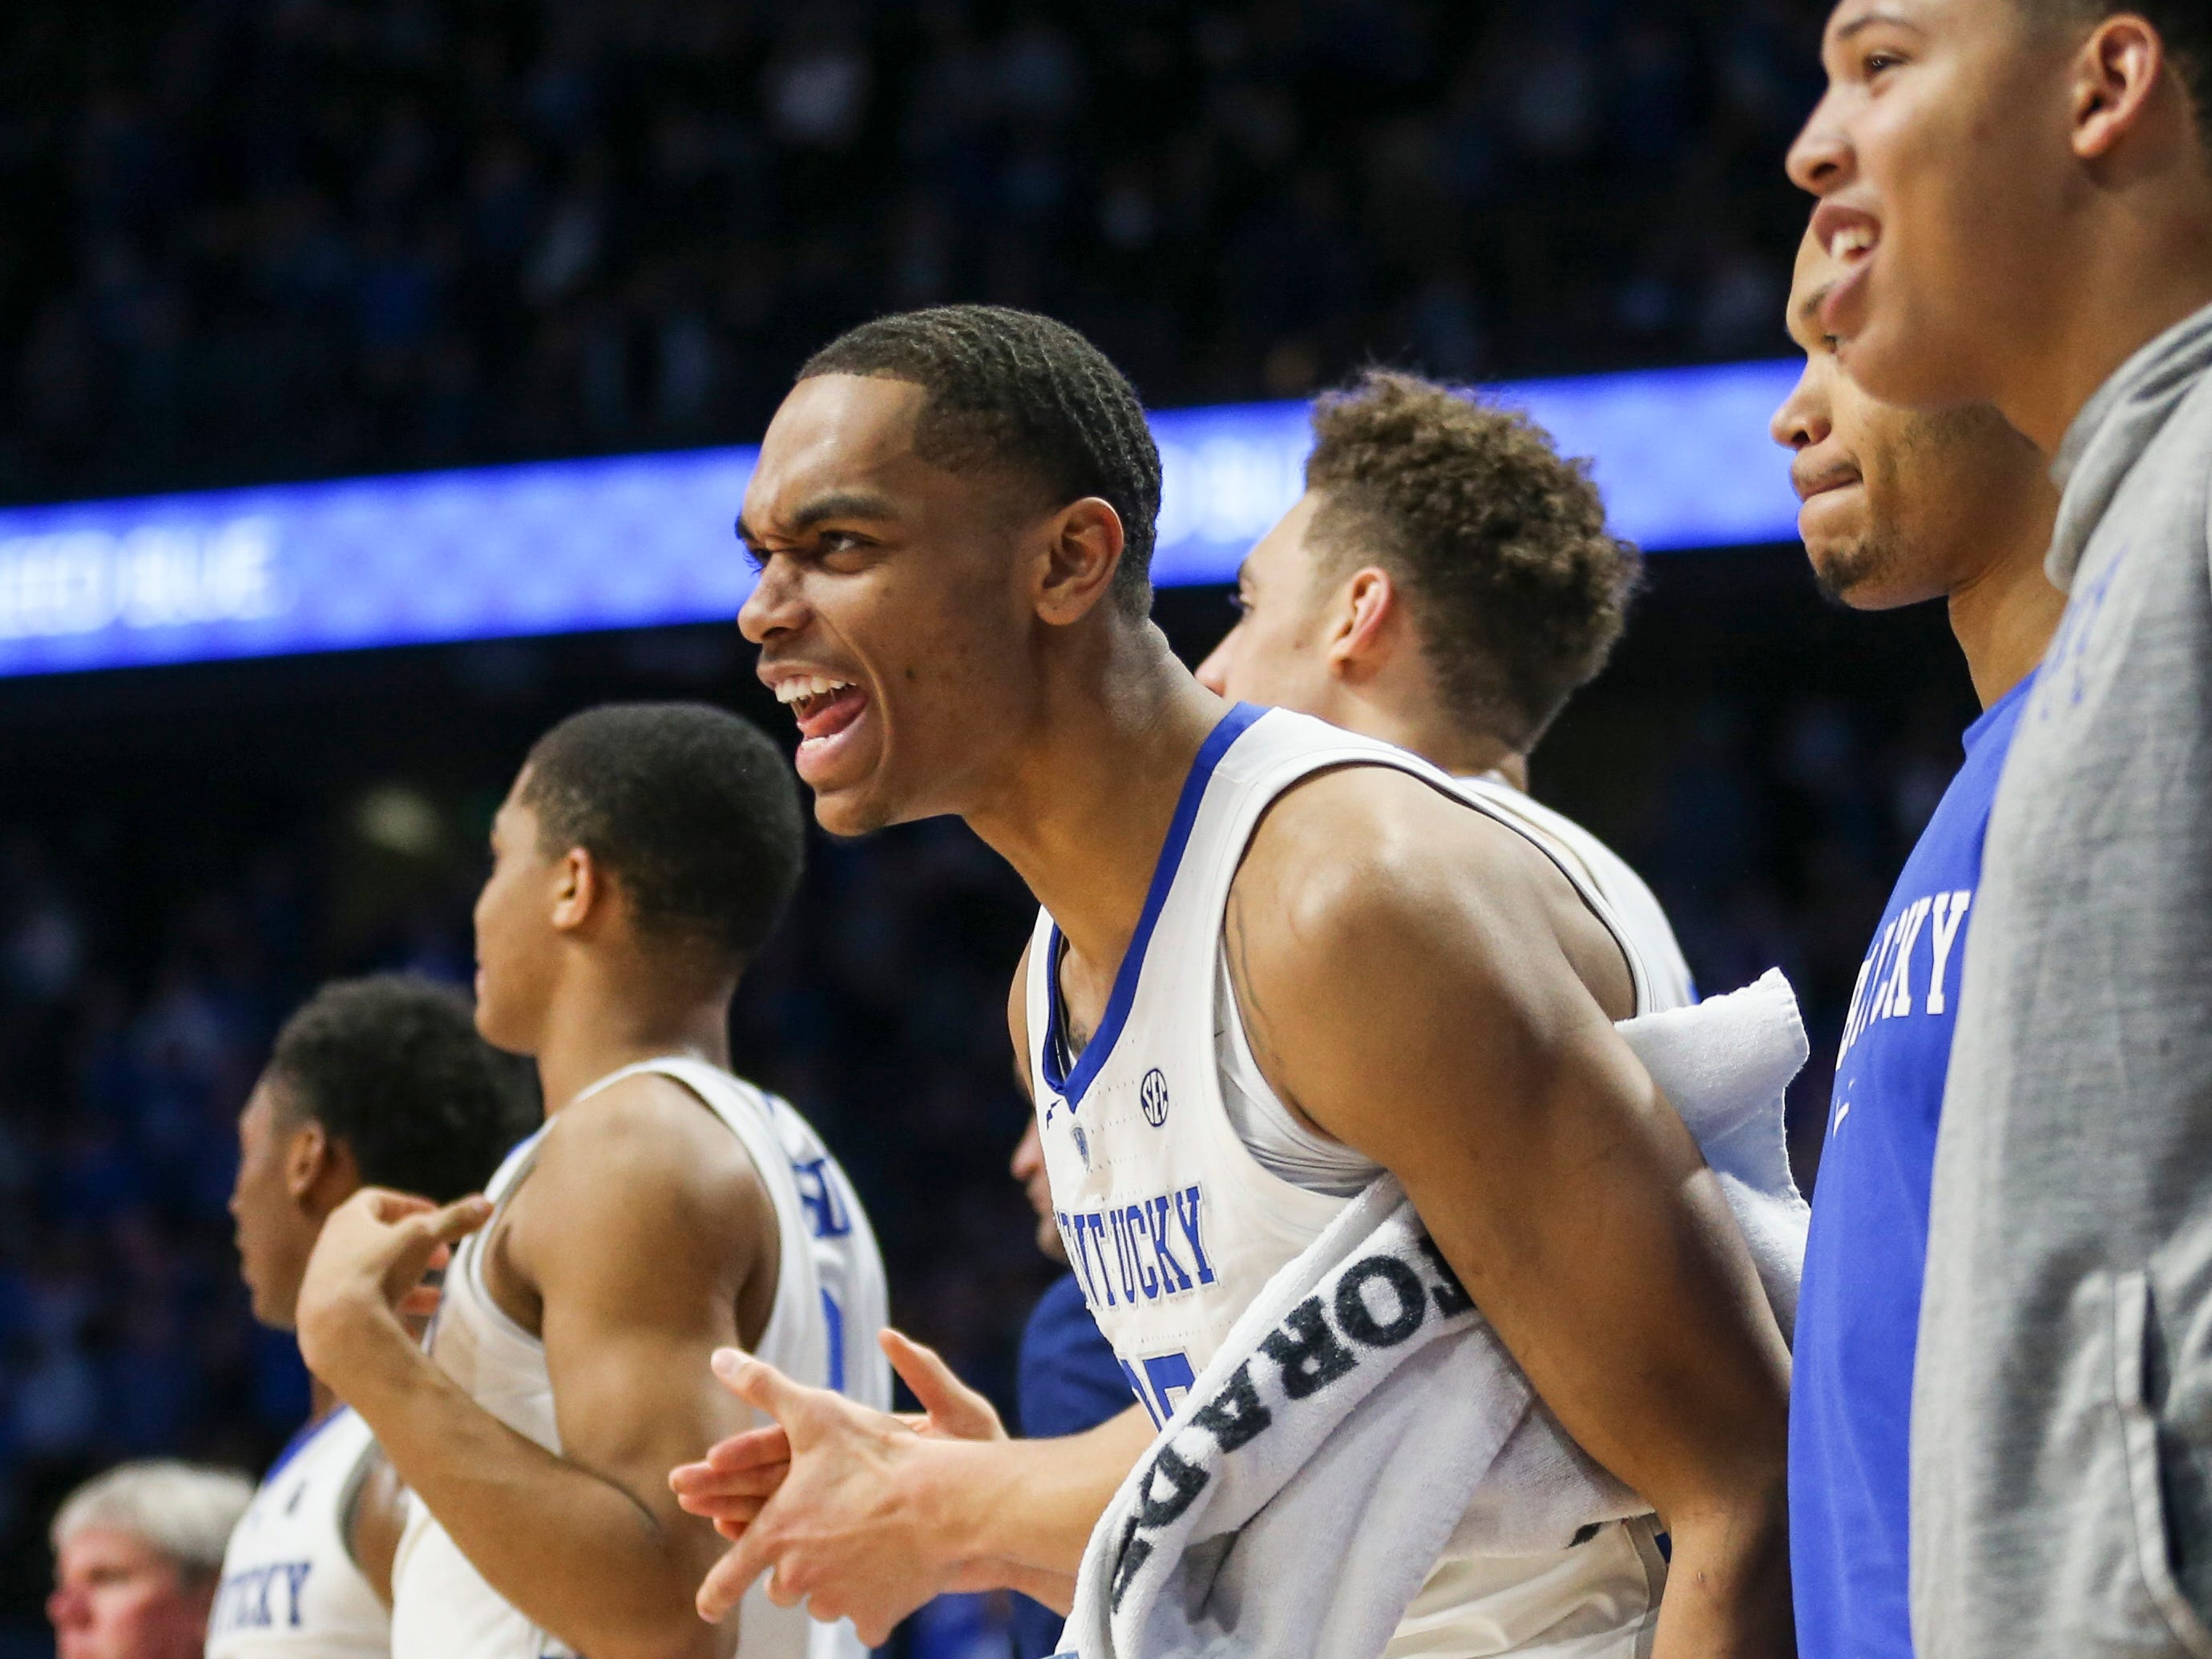 Kentucky's PJ Washington Jr cheered from the bench late in the second half. Washington Jr led the Wildcats with 21 points and six rebounds with four blocks against Mississippi State Tuesday night at Rupp Arena in Lexington. The Wildcats won 76-55.